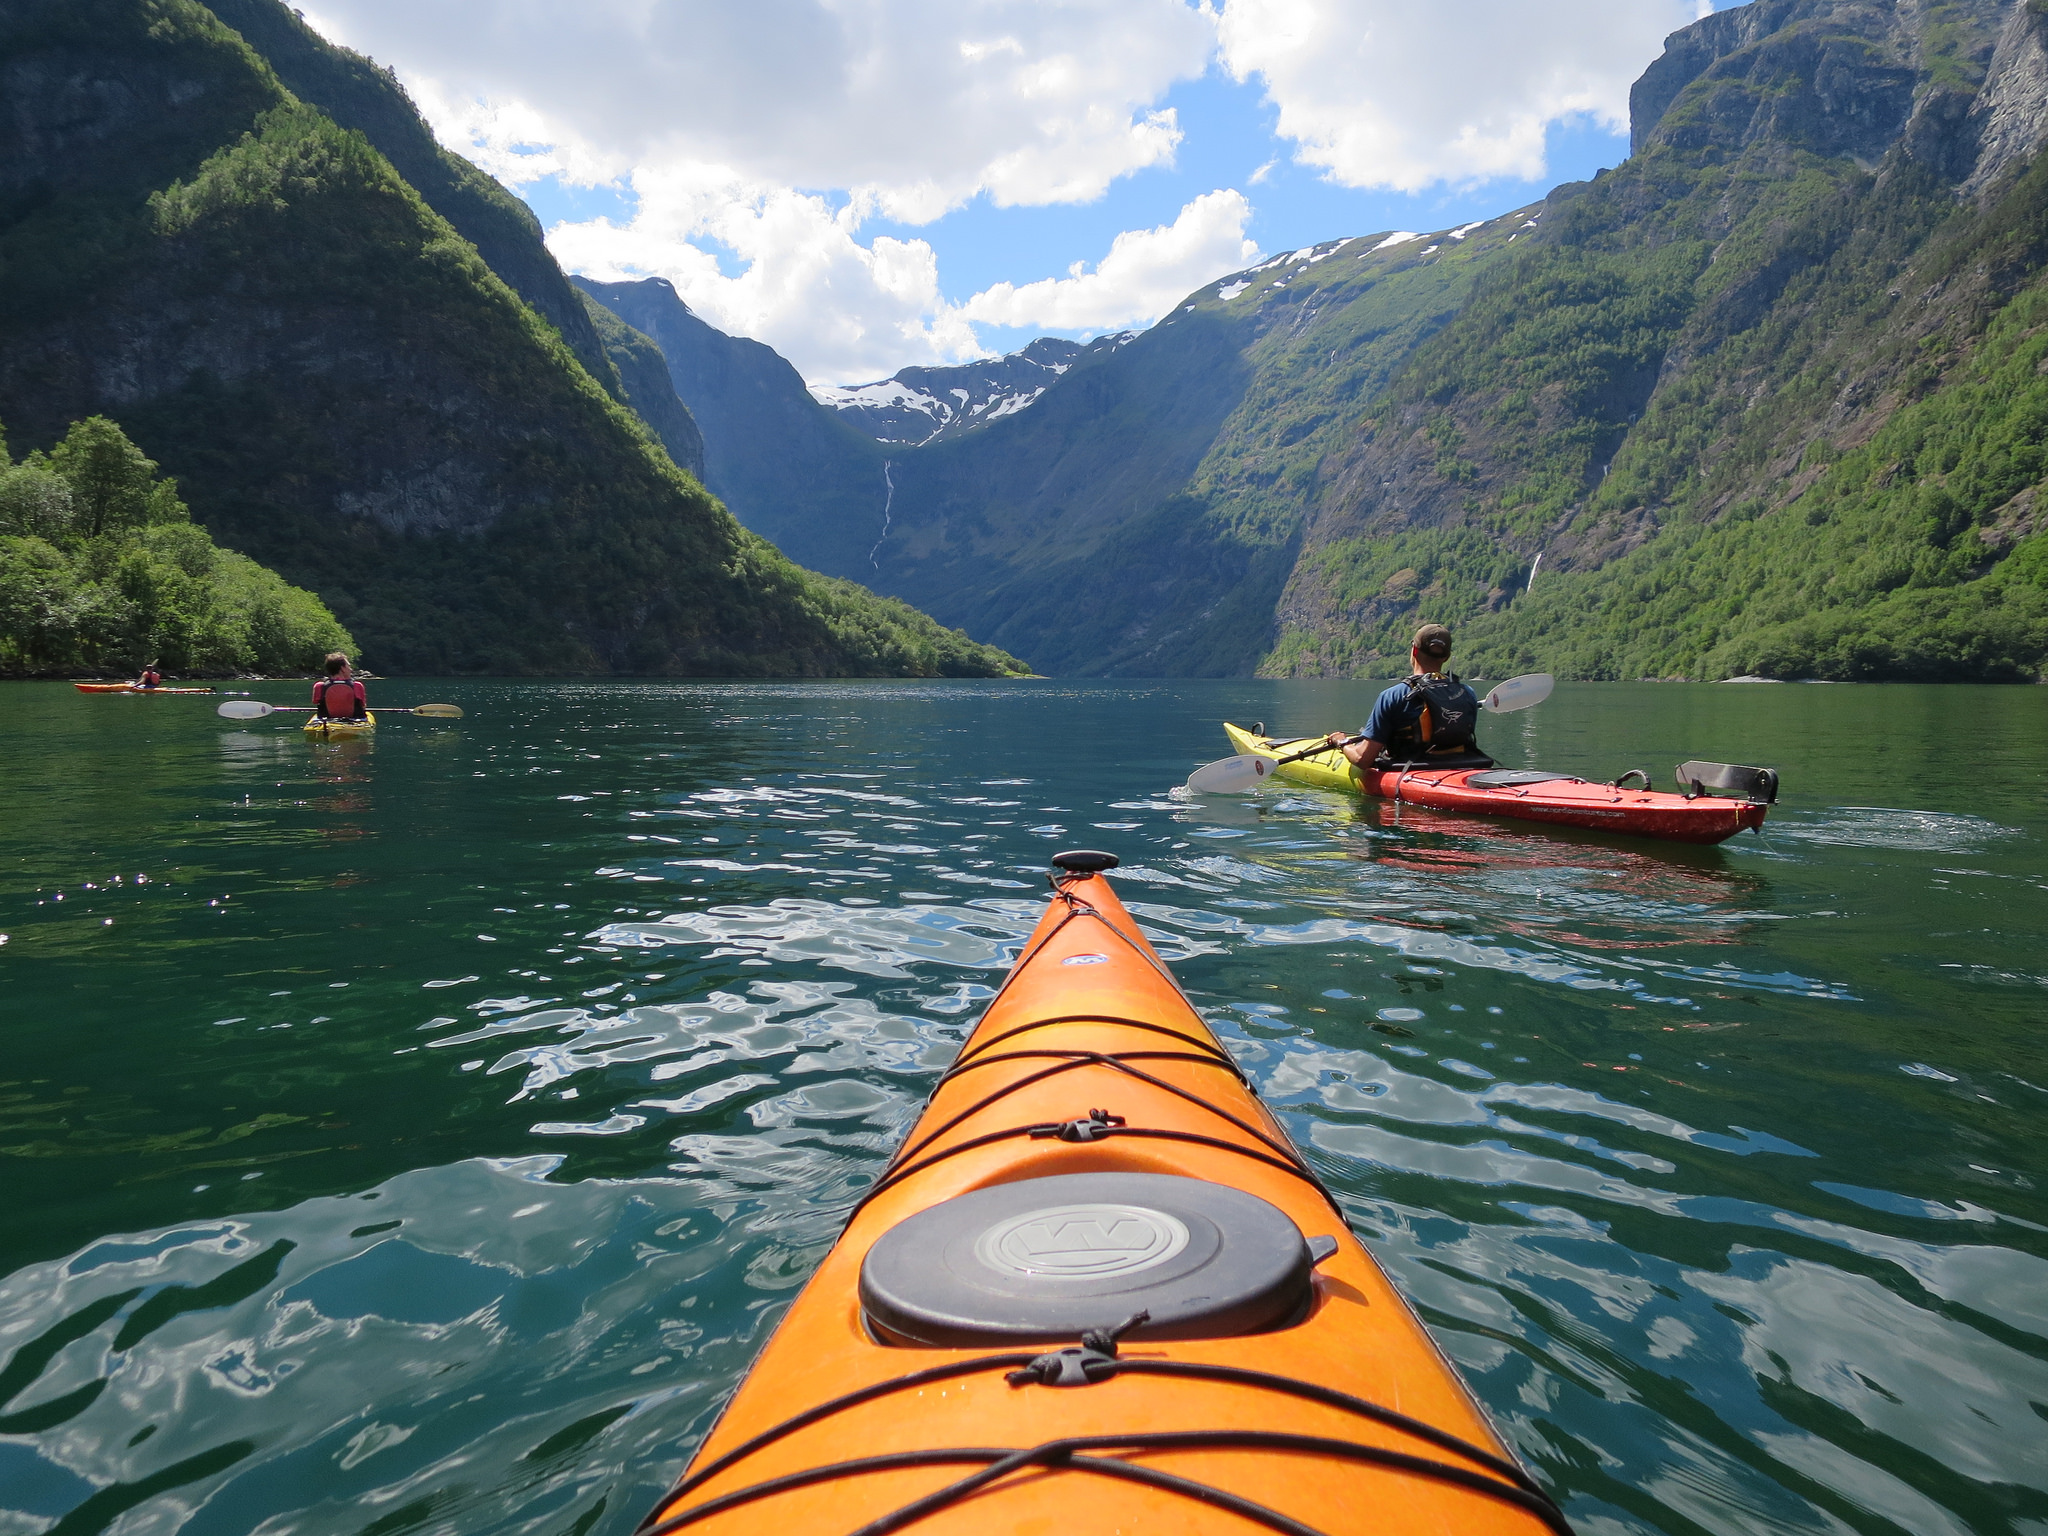 Bond with nature through kayaking